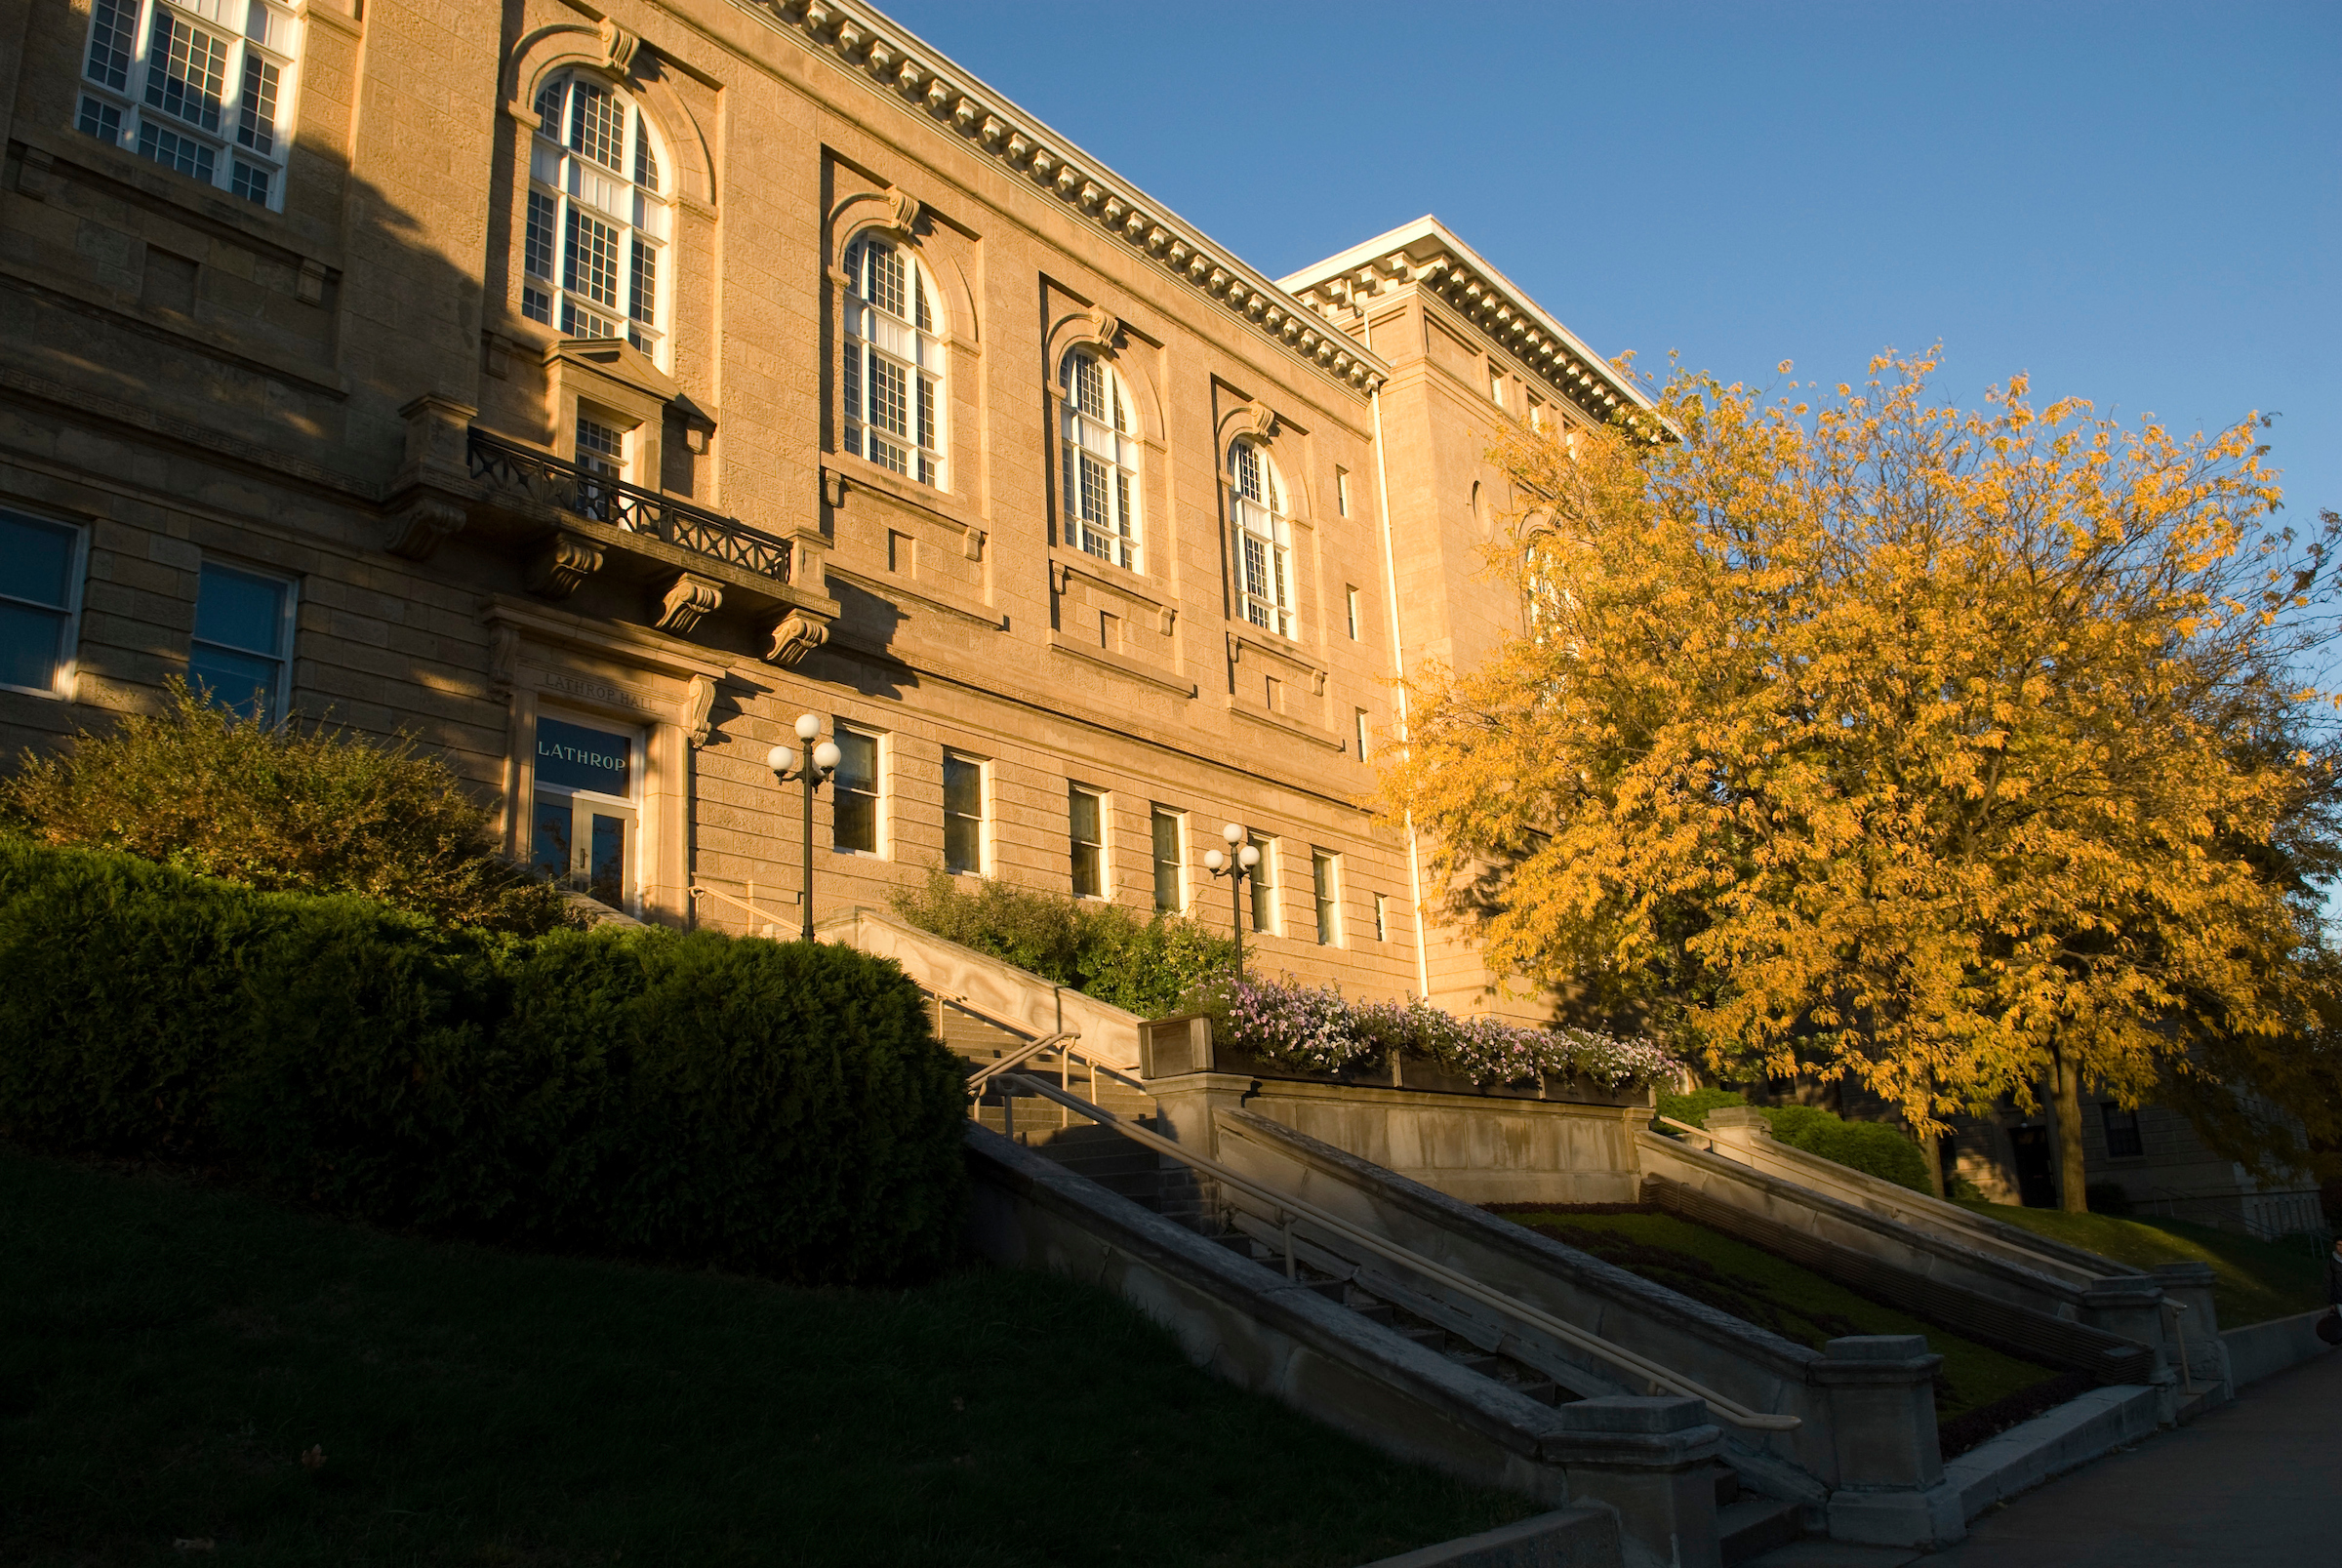 Lathrop Hall in autumn photo